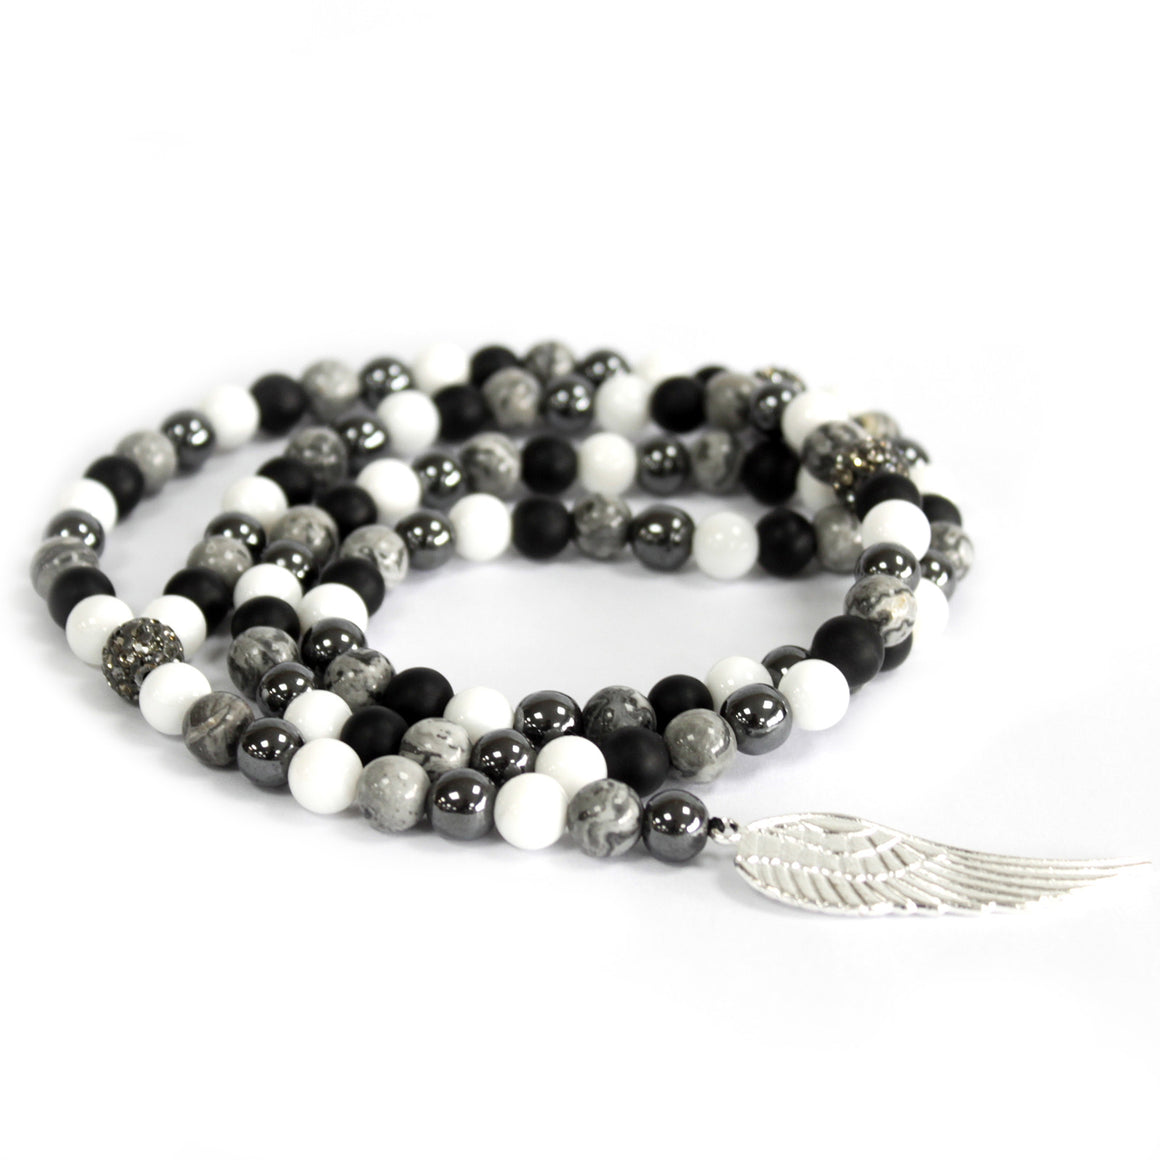 Grey Agate Mixed Angel Wing Charm Mala Beads